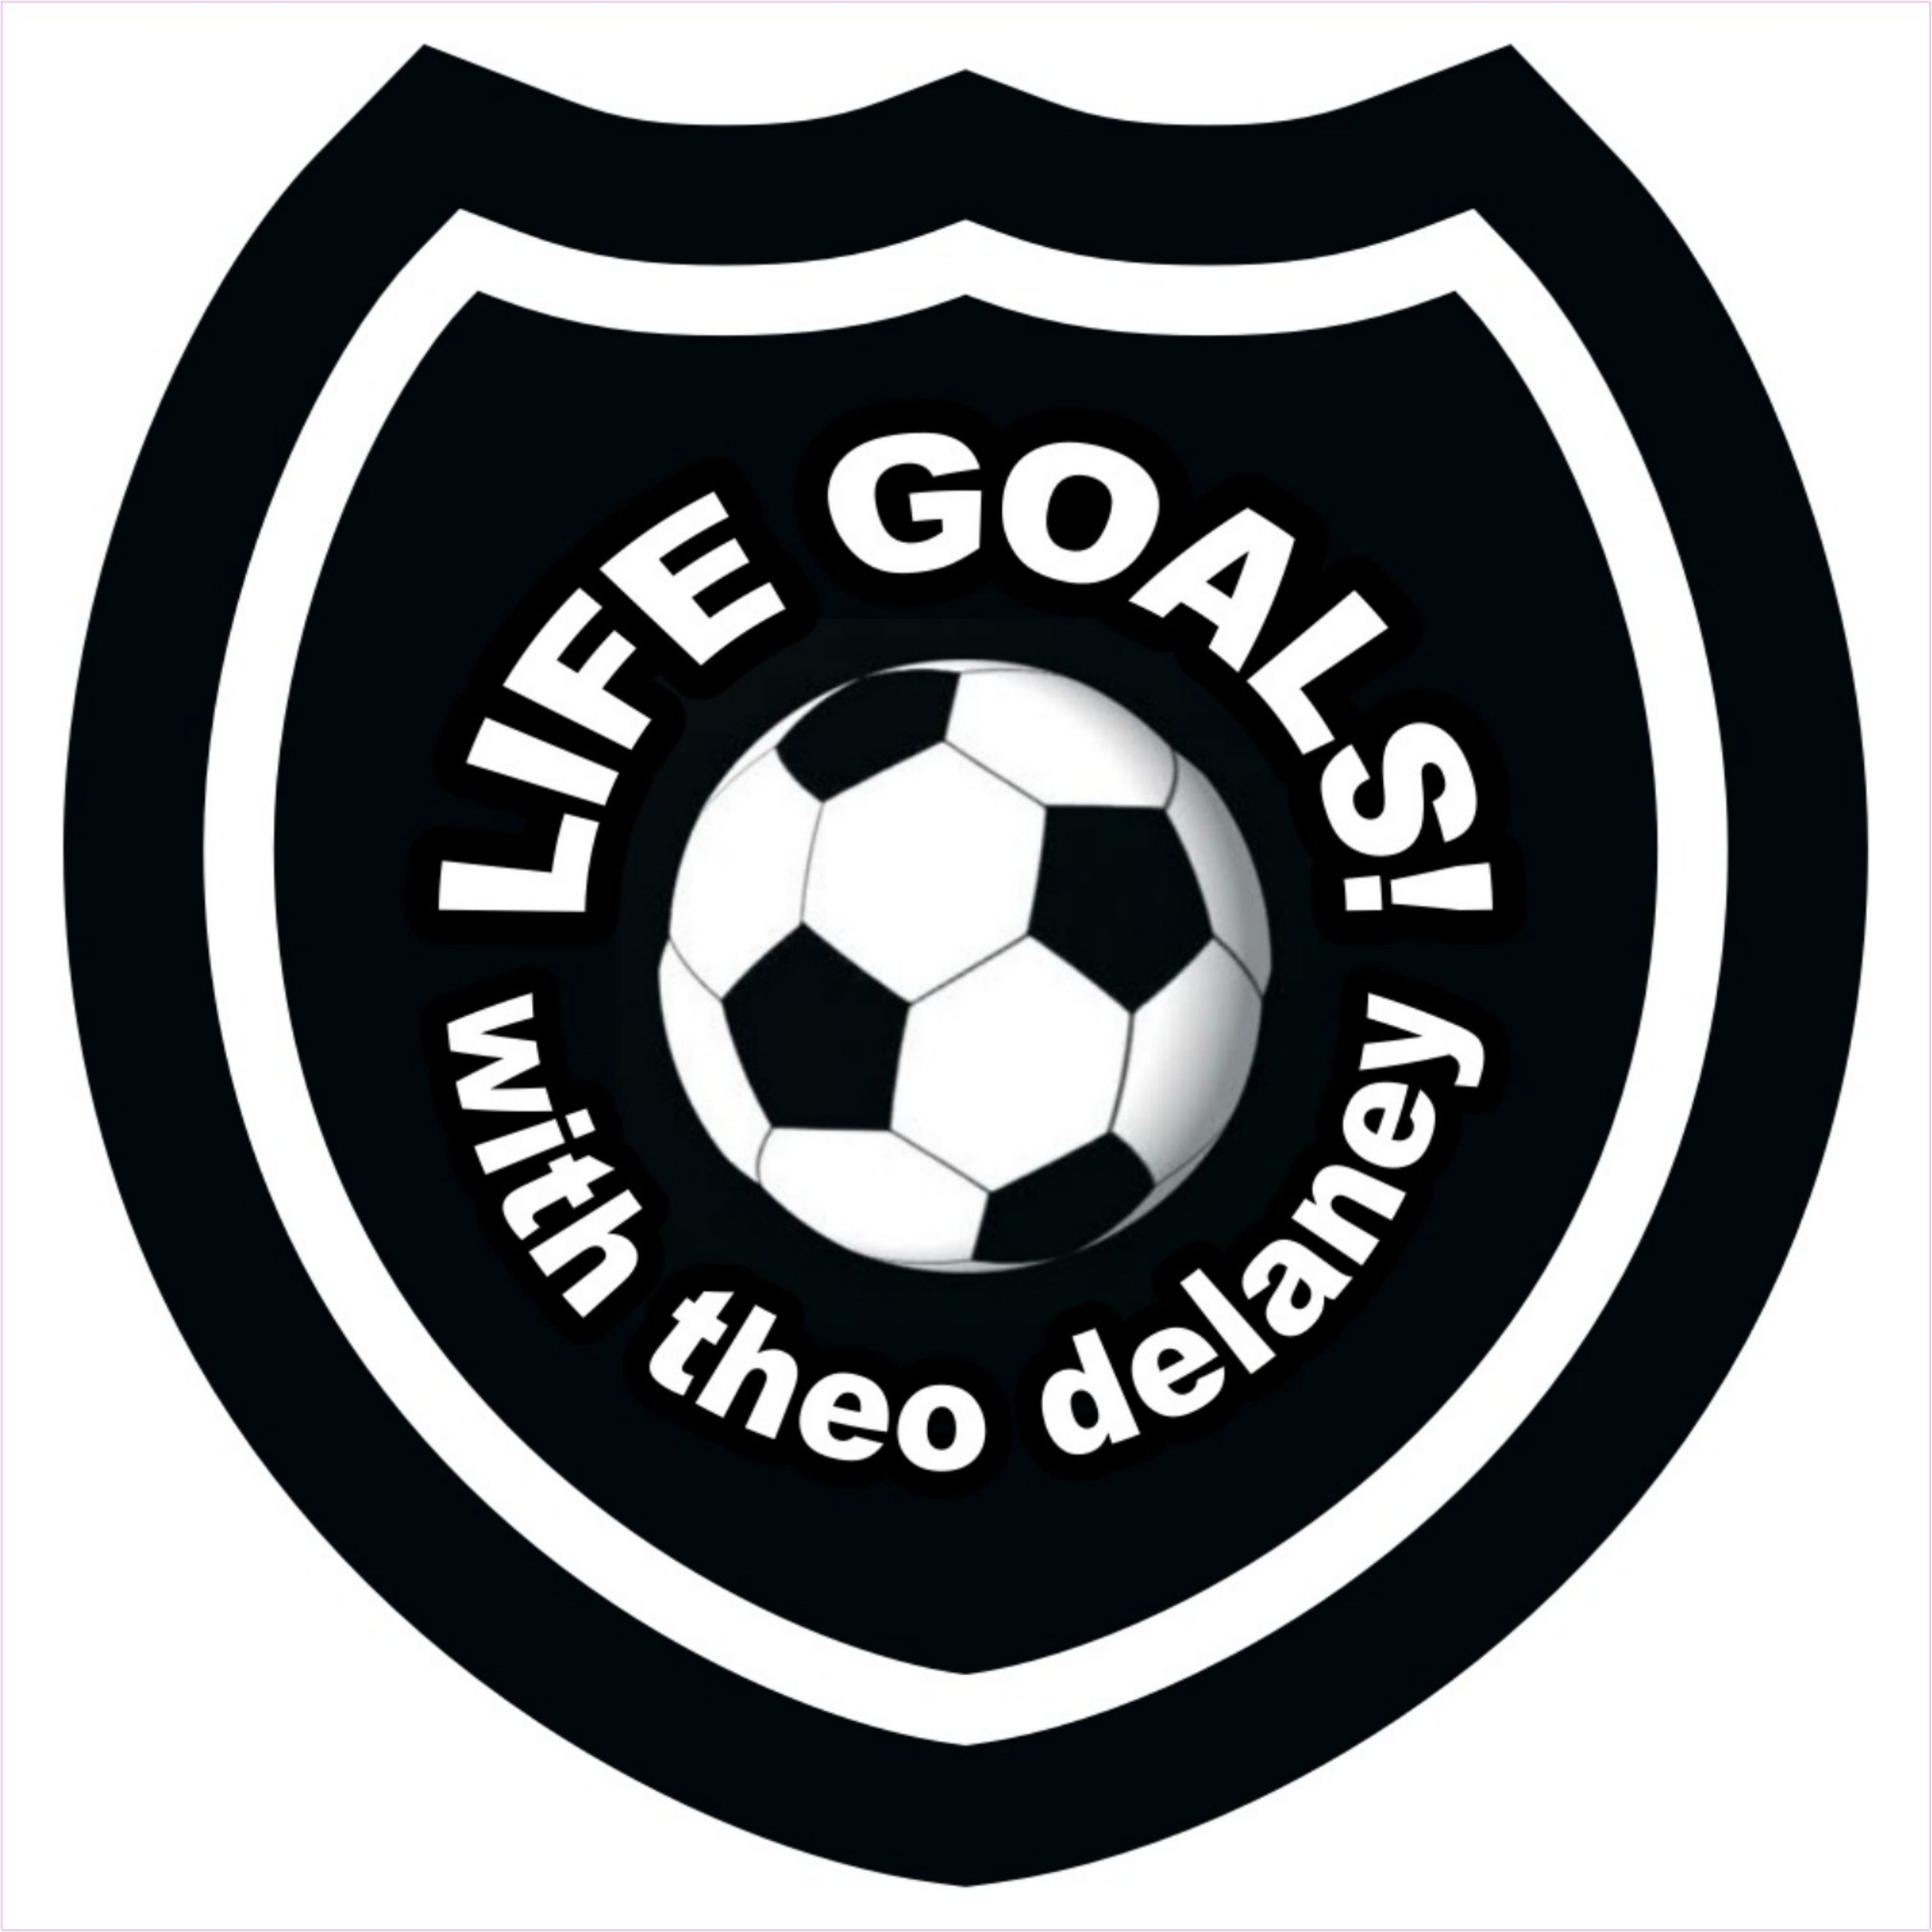 Life Goals with Theo Delaney - Tim Vickery